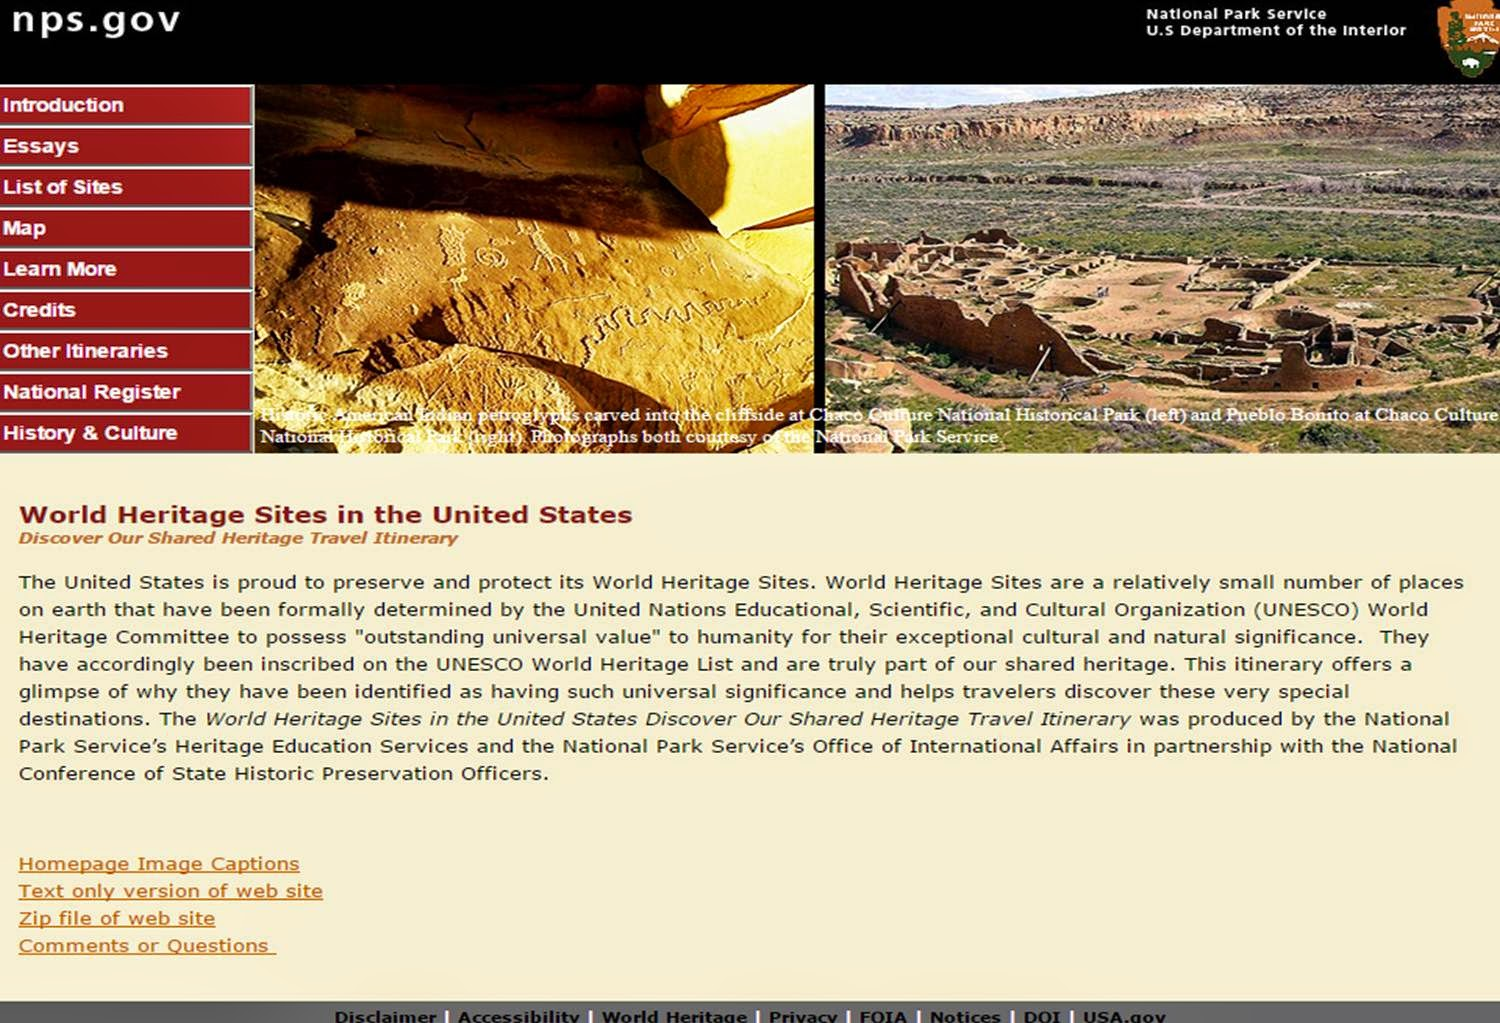 World Heritage Sites in the United States: Discover Our Shared Heritage Travel Itinerary